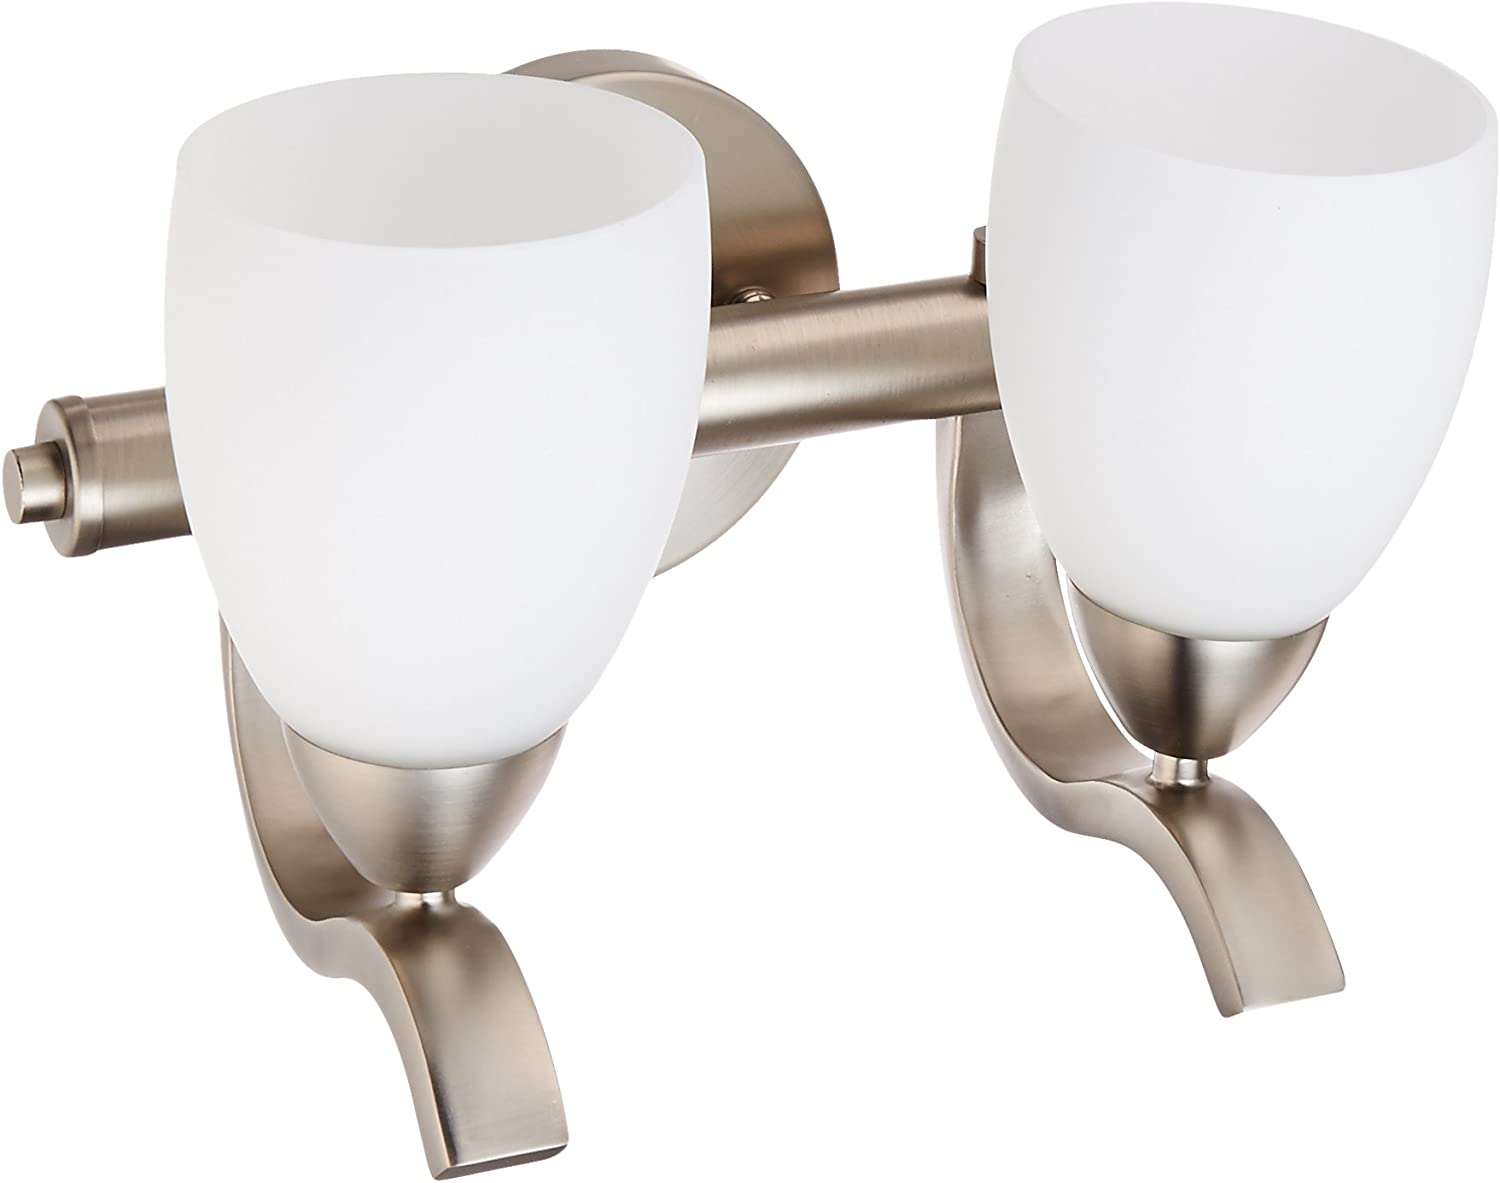 Forte Lighting 5045-02-55 2-Light Traditional Vanity Fixture, Brushed Nickel Finish with Satin Opal glass